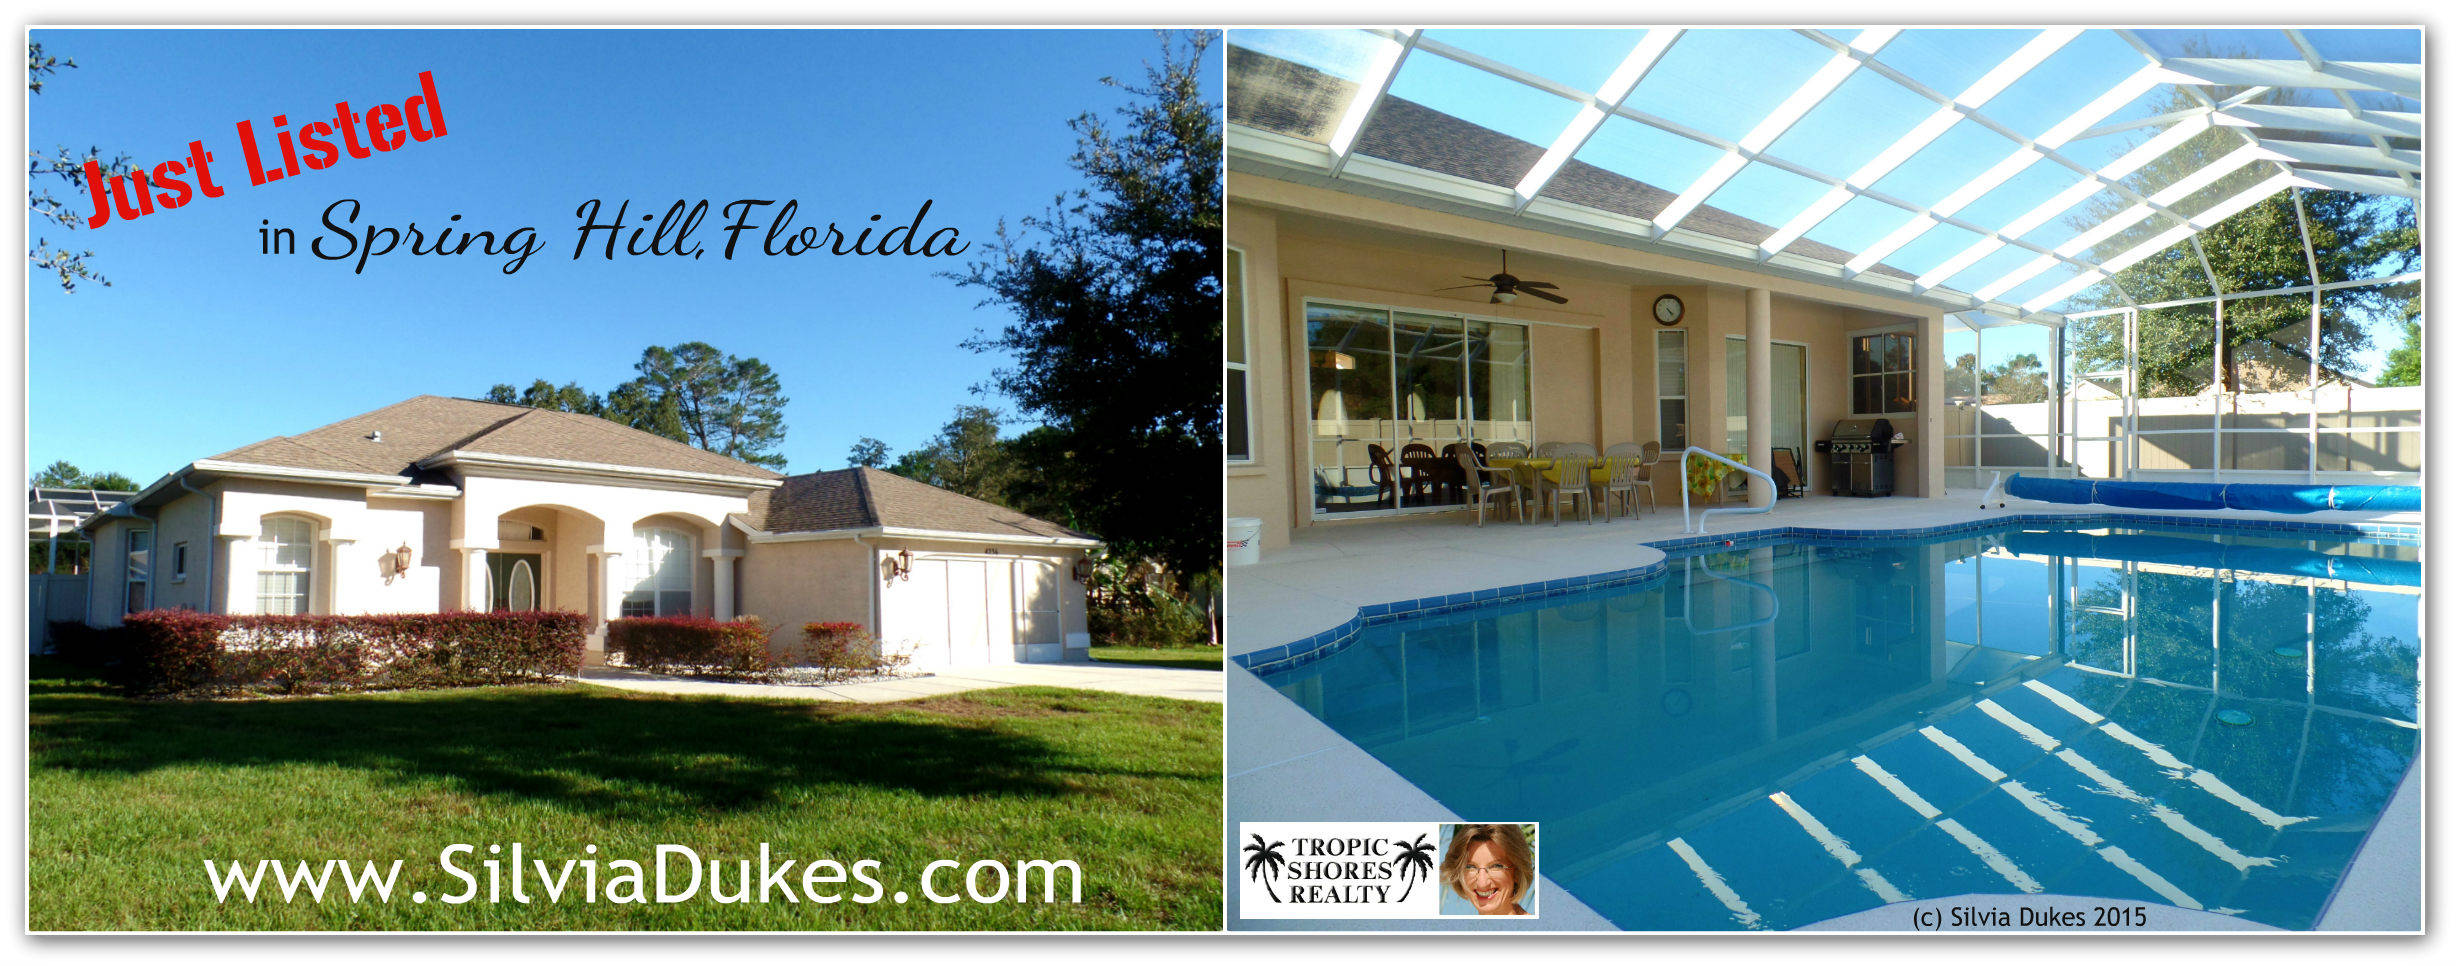 4236 Bing Ave Spring Hill Florida for sale by Realtor Silvia Dukes